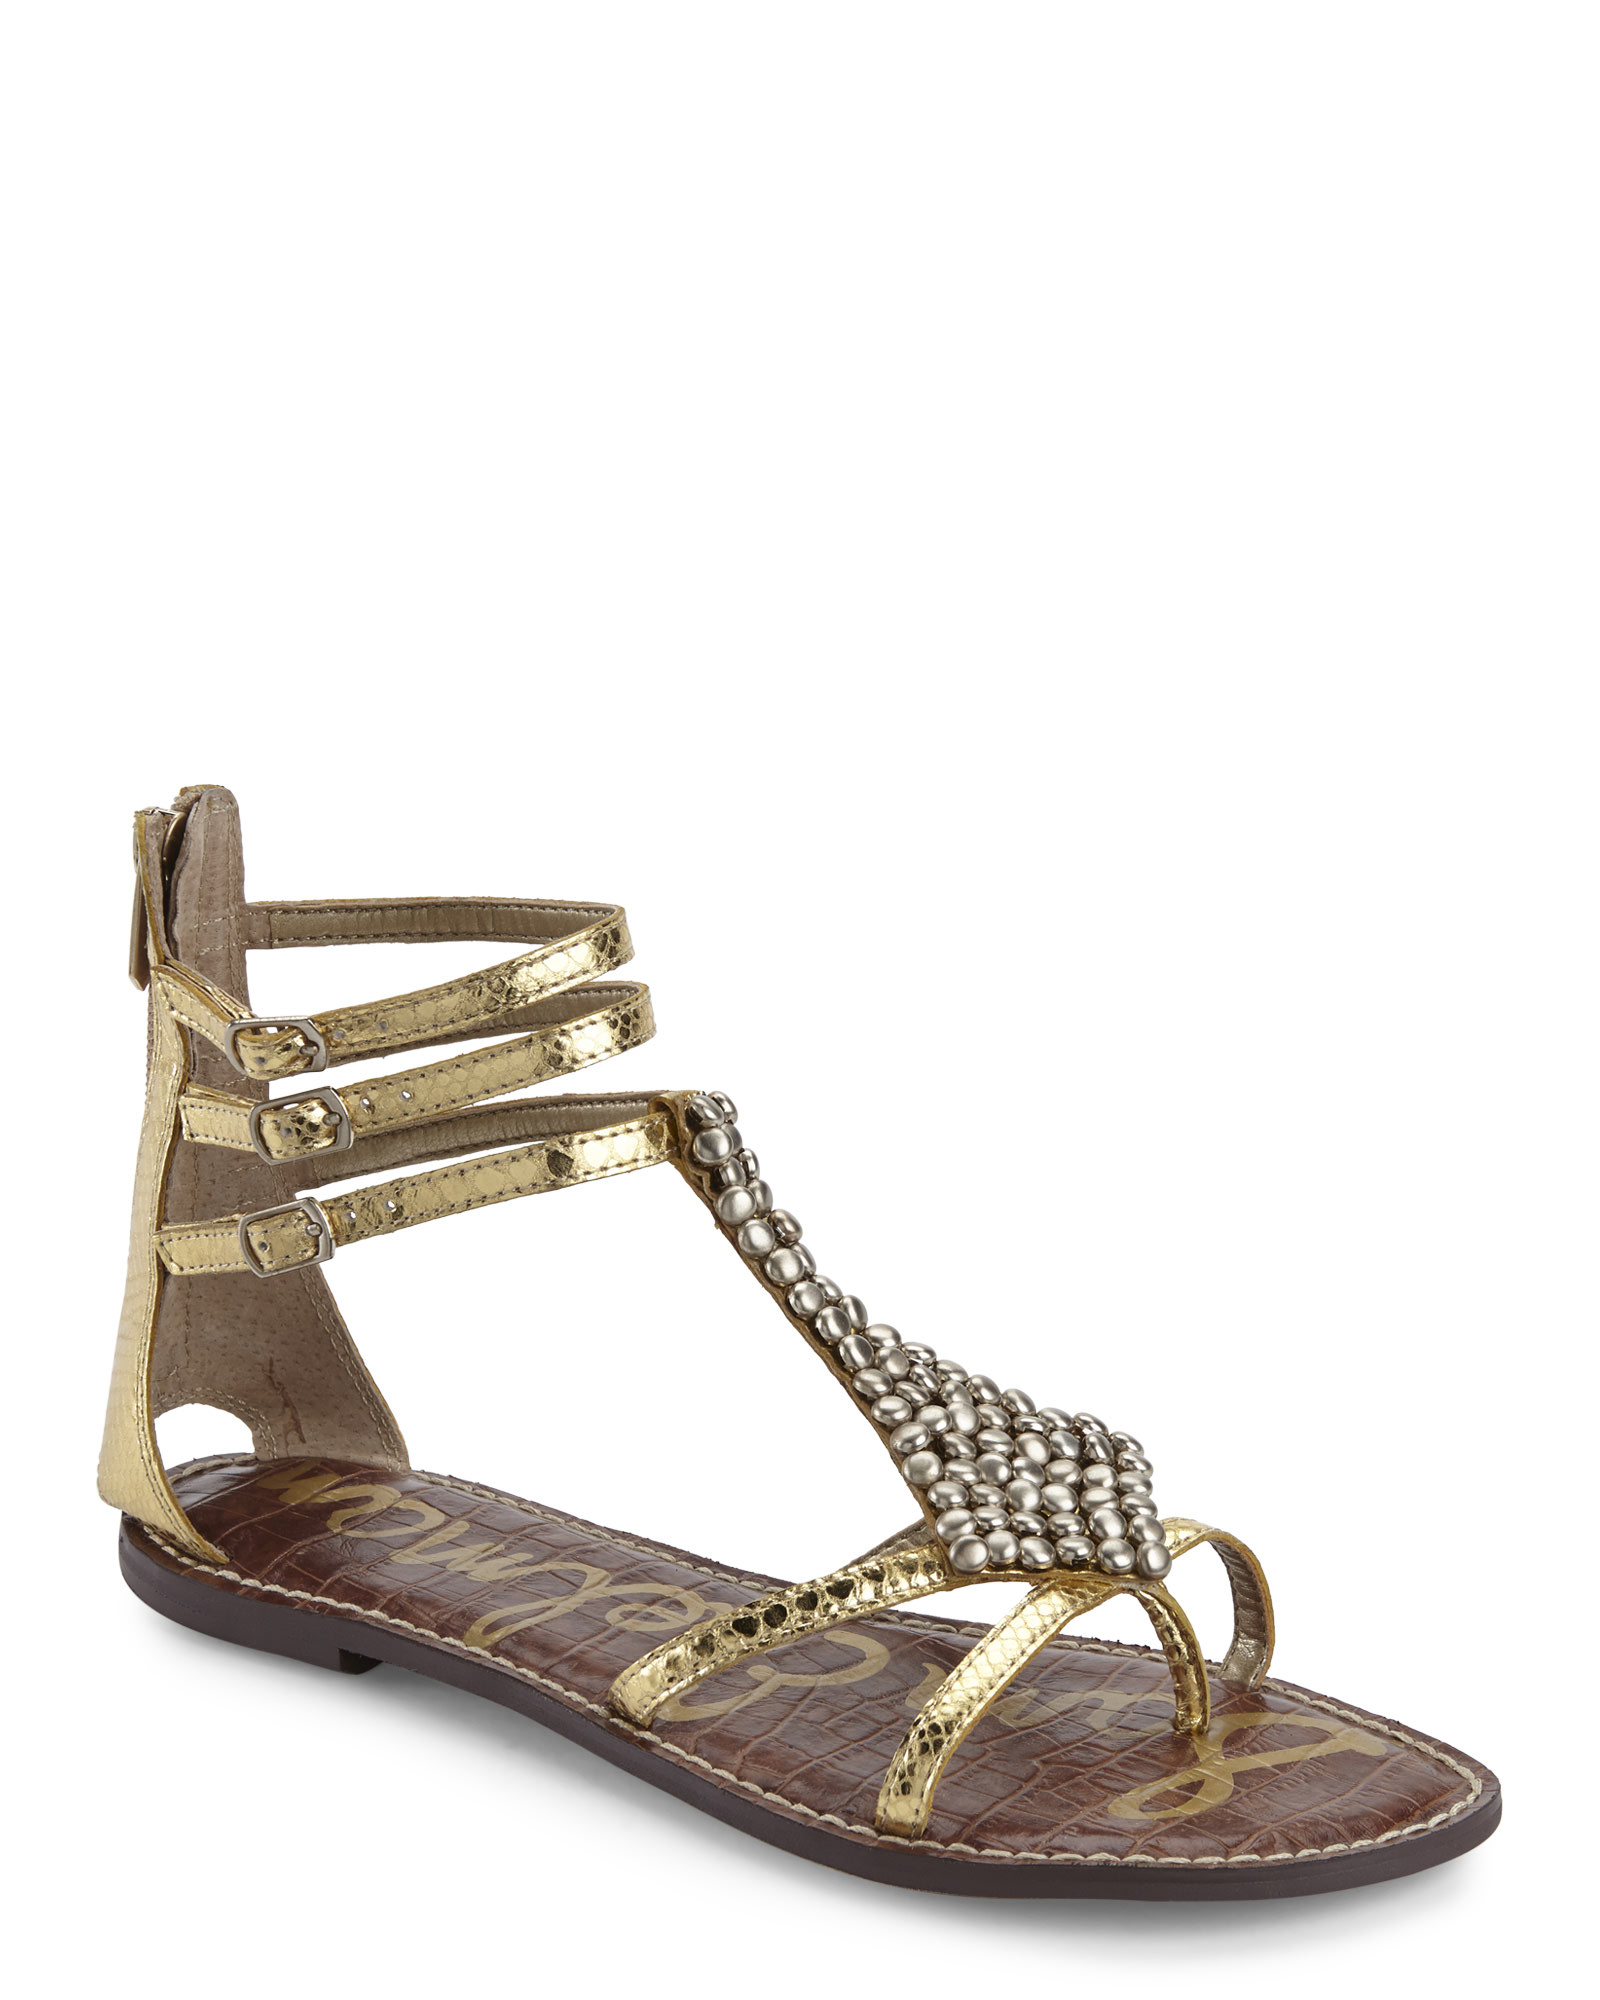 187a15a1e9b Gallery. Previously sold at  Century 21 · Women s Gladiator Sandals Women s Sam  Edelman ...